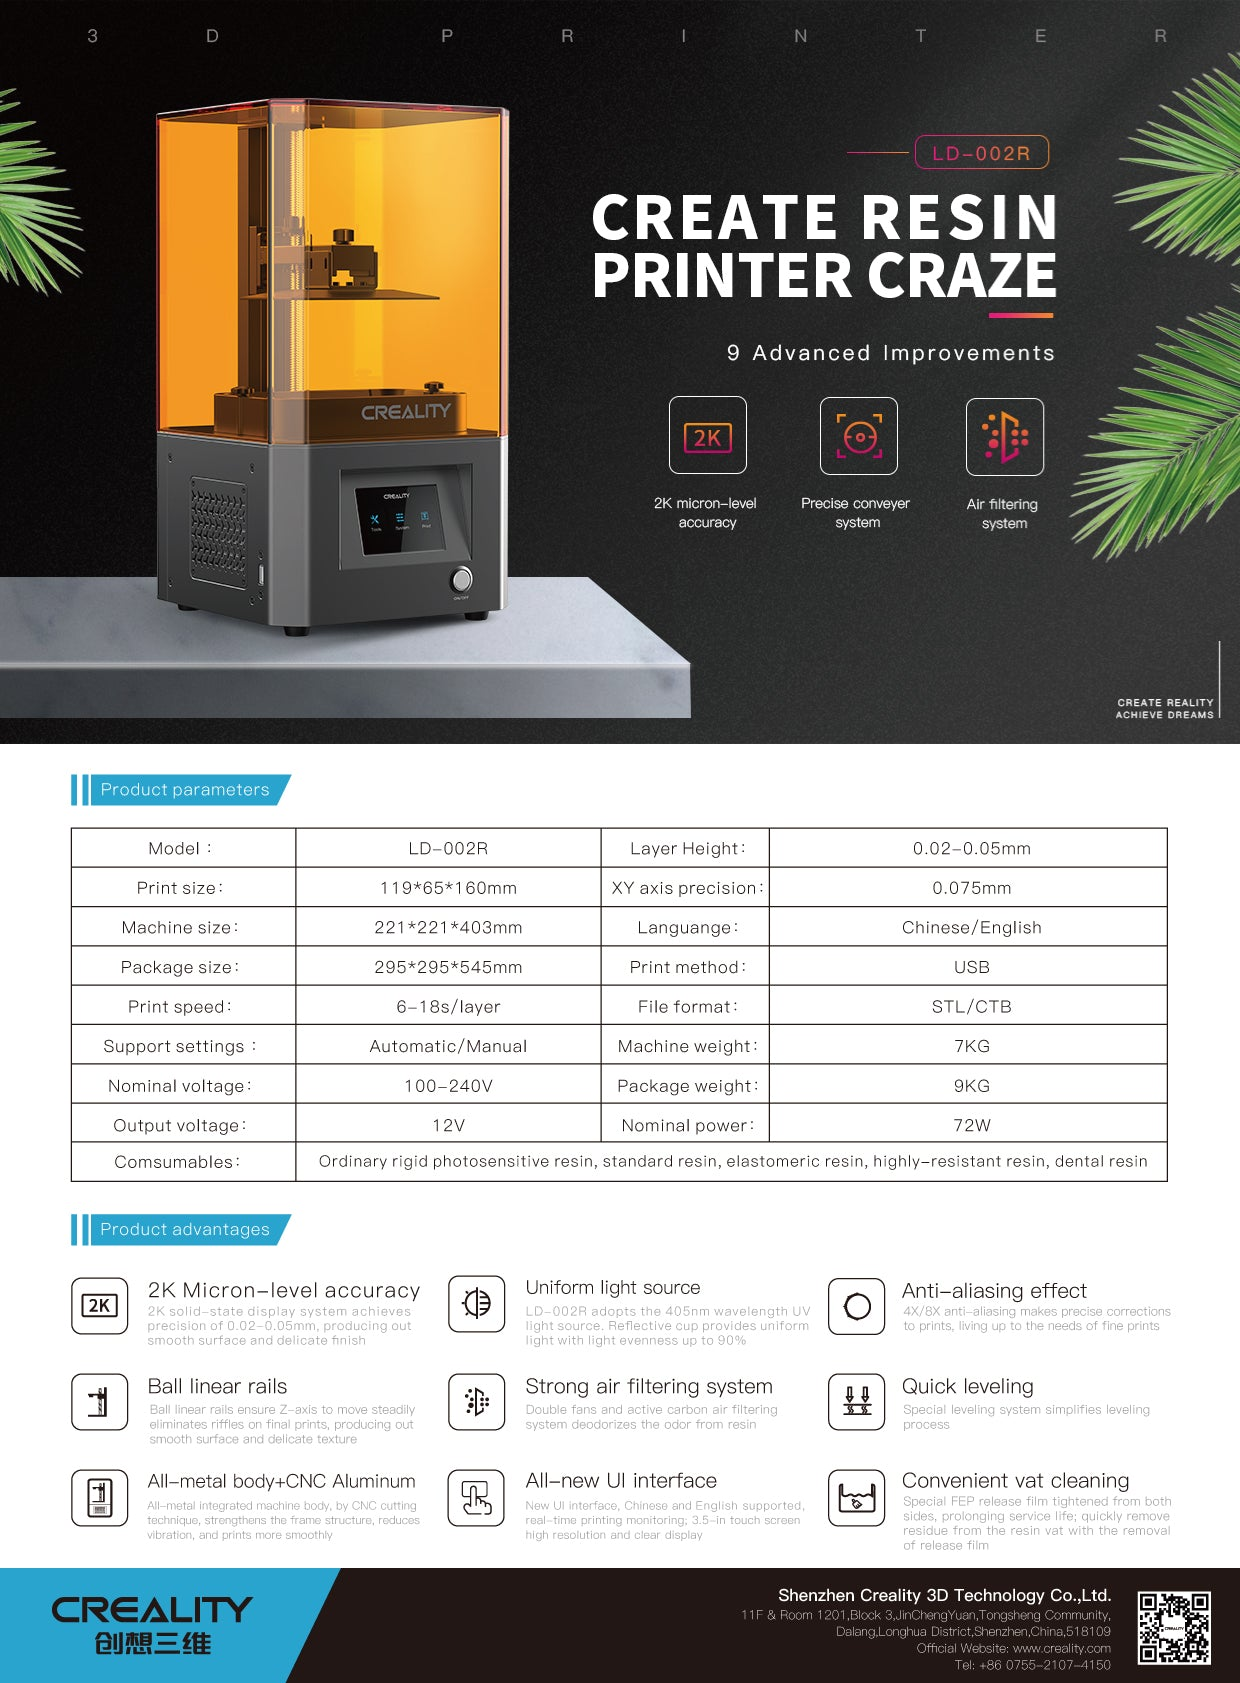 CREALITY 3D LD-002R LCD Resin 3D Printer